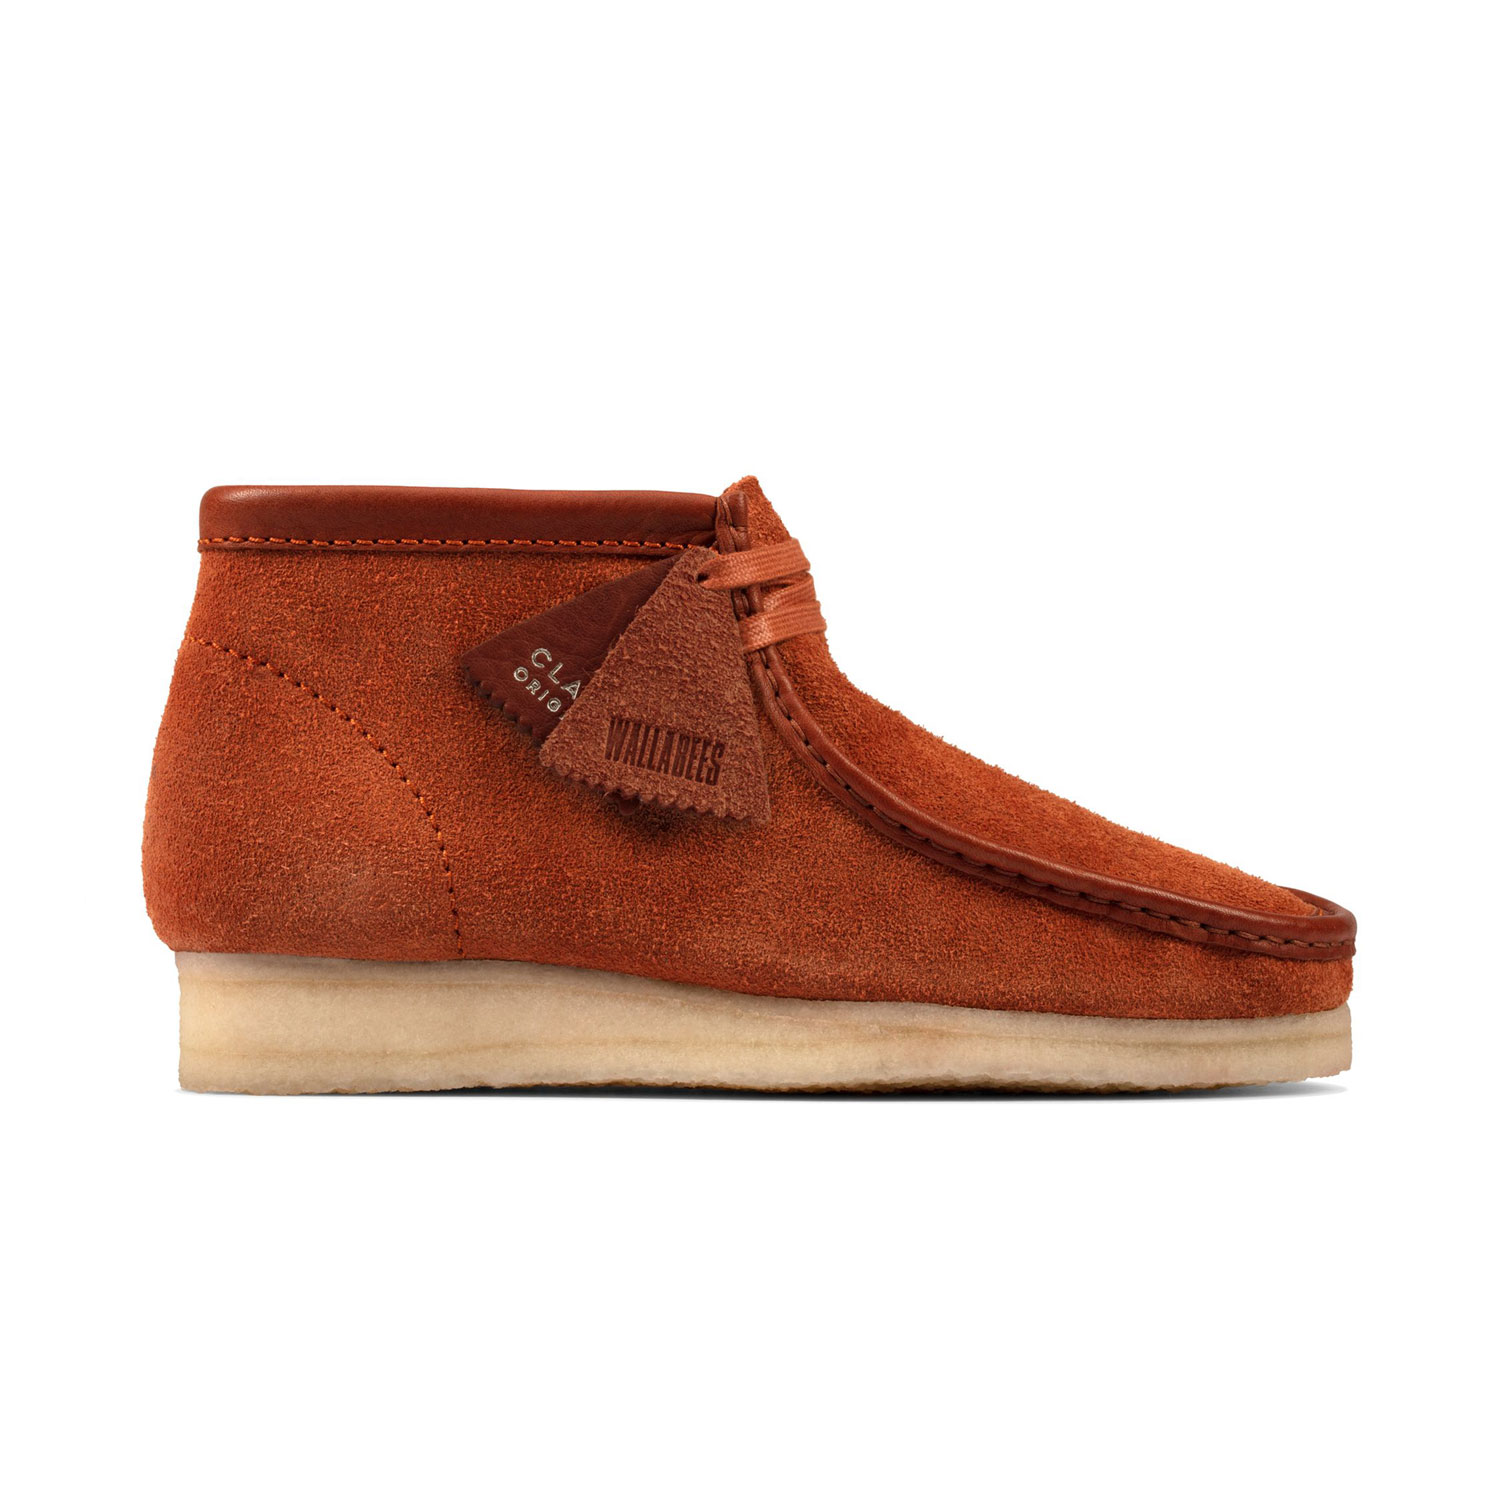 Clarks Wallabee Boot - Tan/Hairy Suede 0